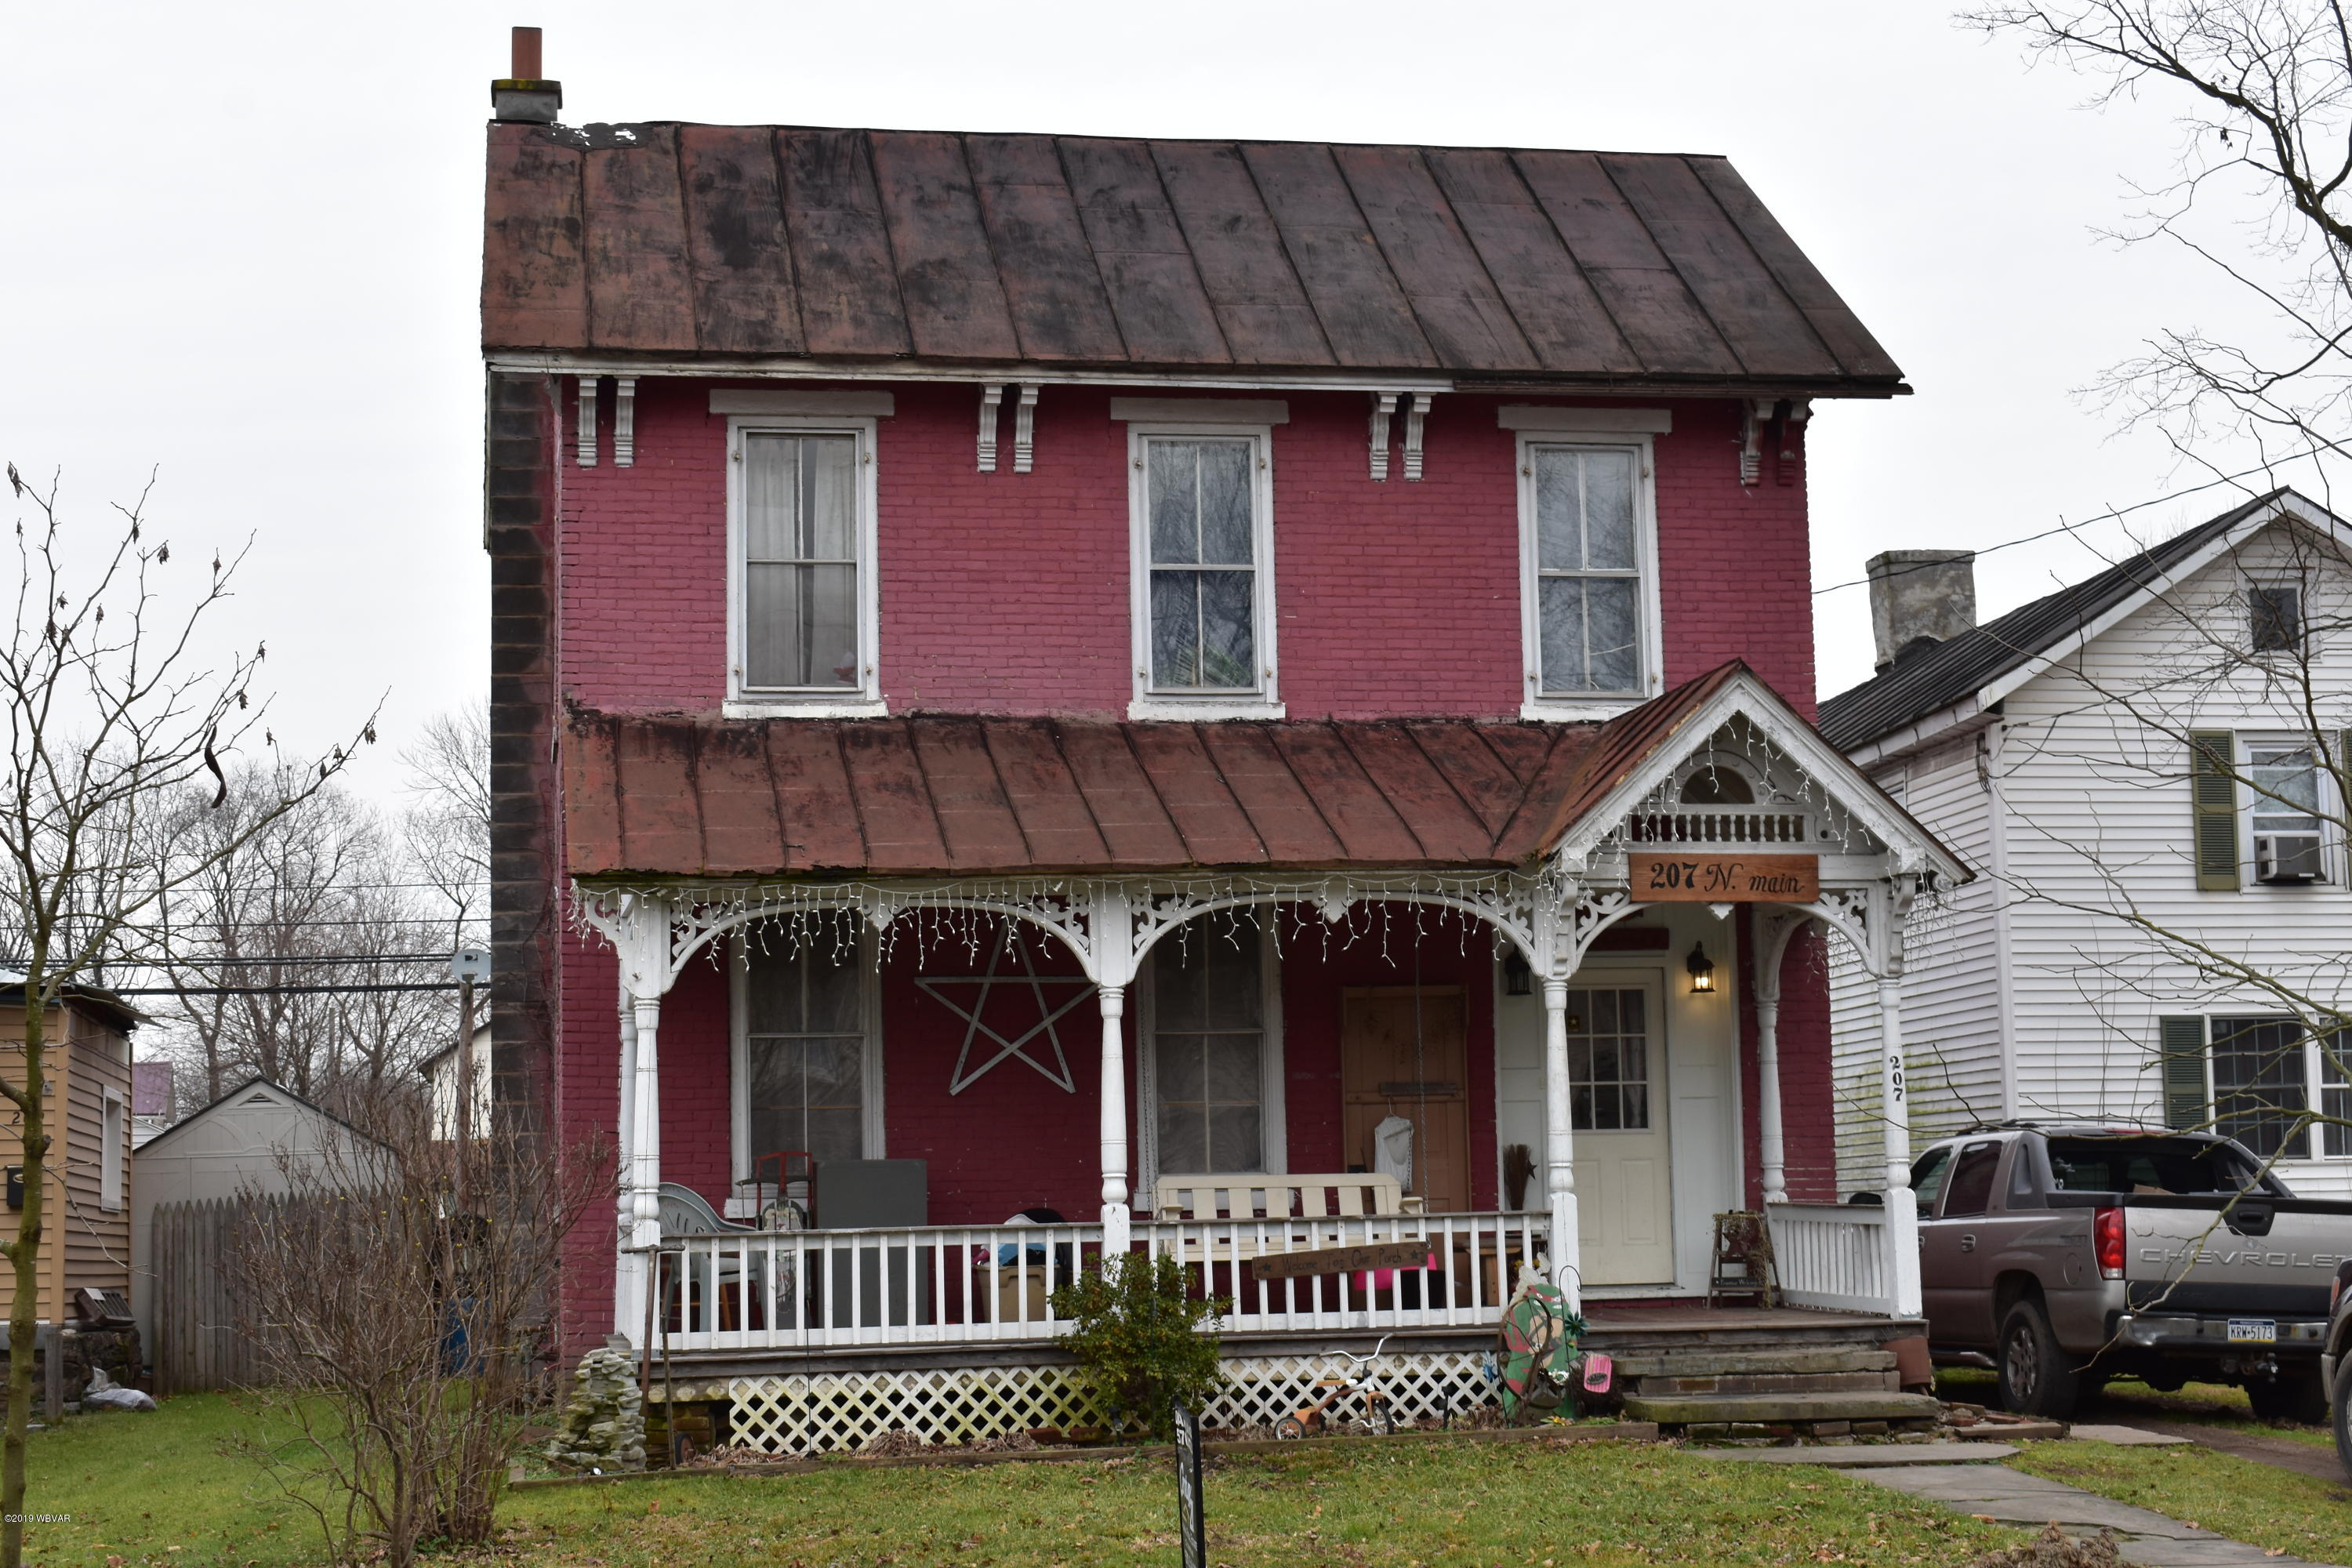 207 MAIN STREET,Muncy,PA 17756,3 Bedrooms Bedrooms,2 BathroomsBathrooms,Residential,MAIN,WB-86154